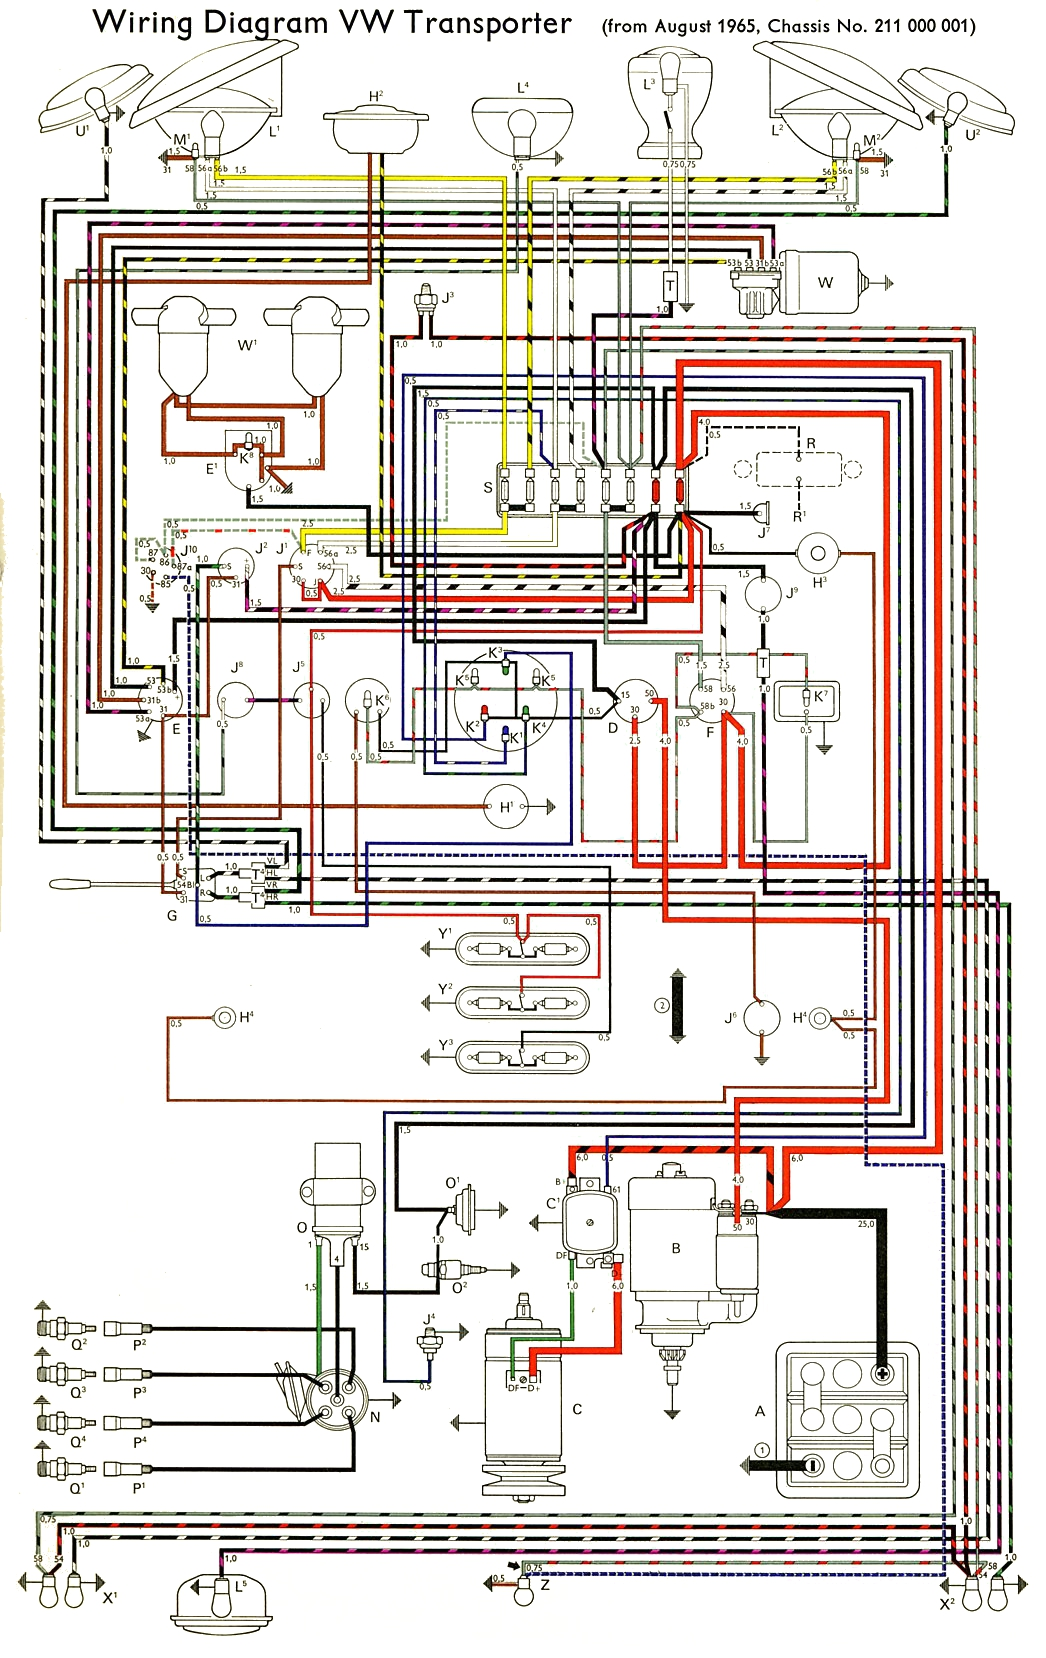 Bus on 1960 chevy wiring diagram